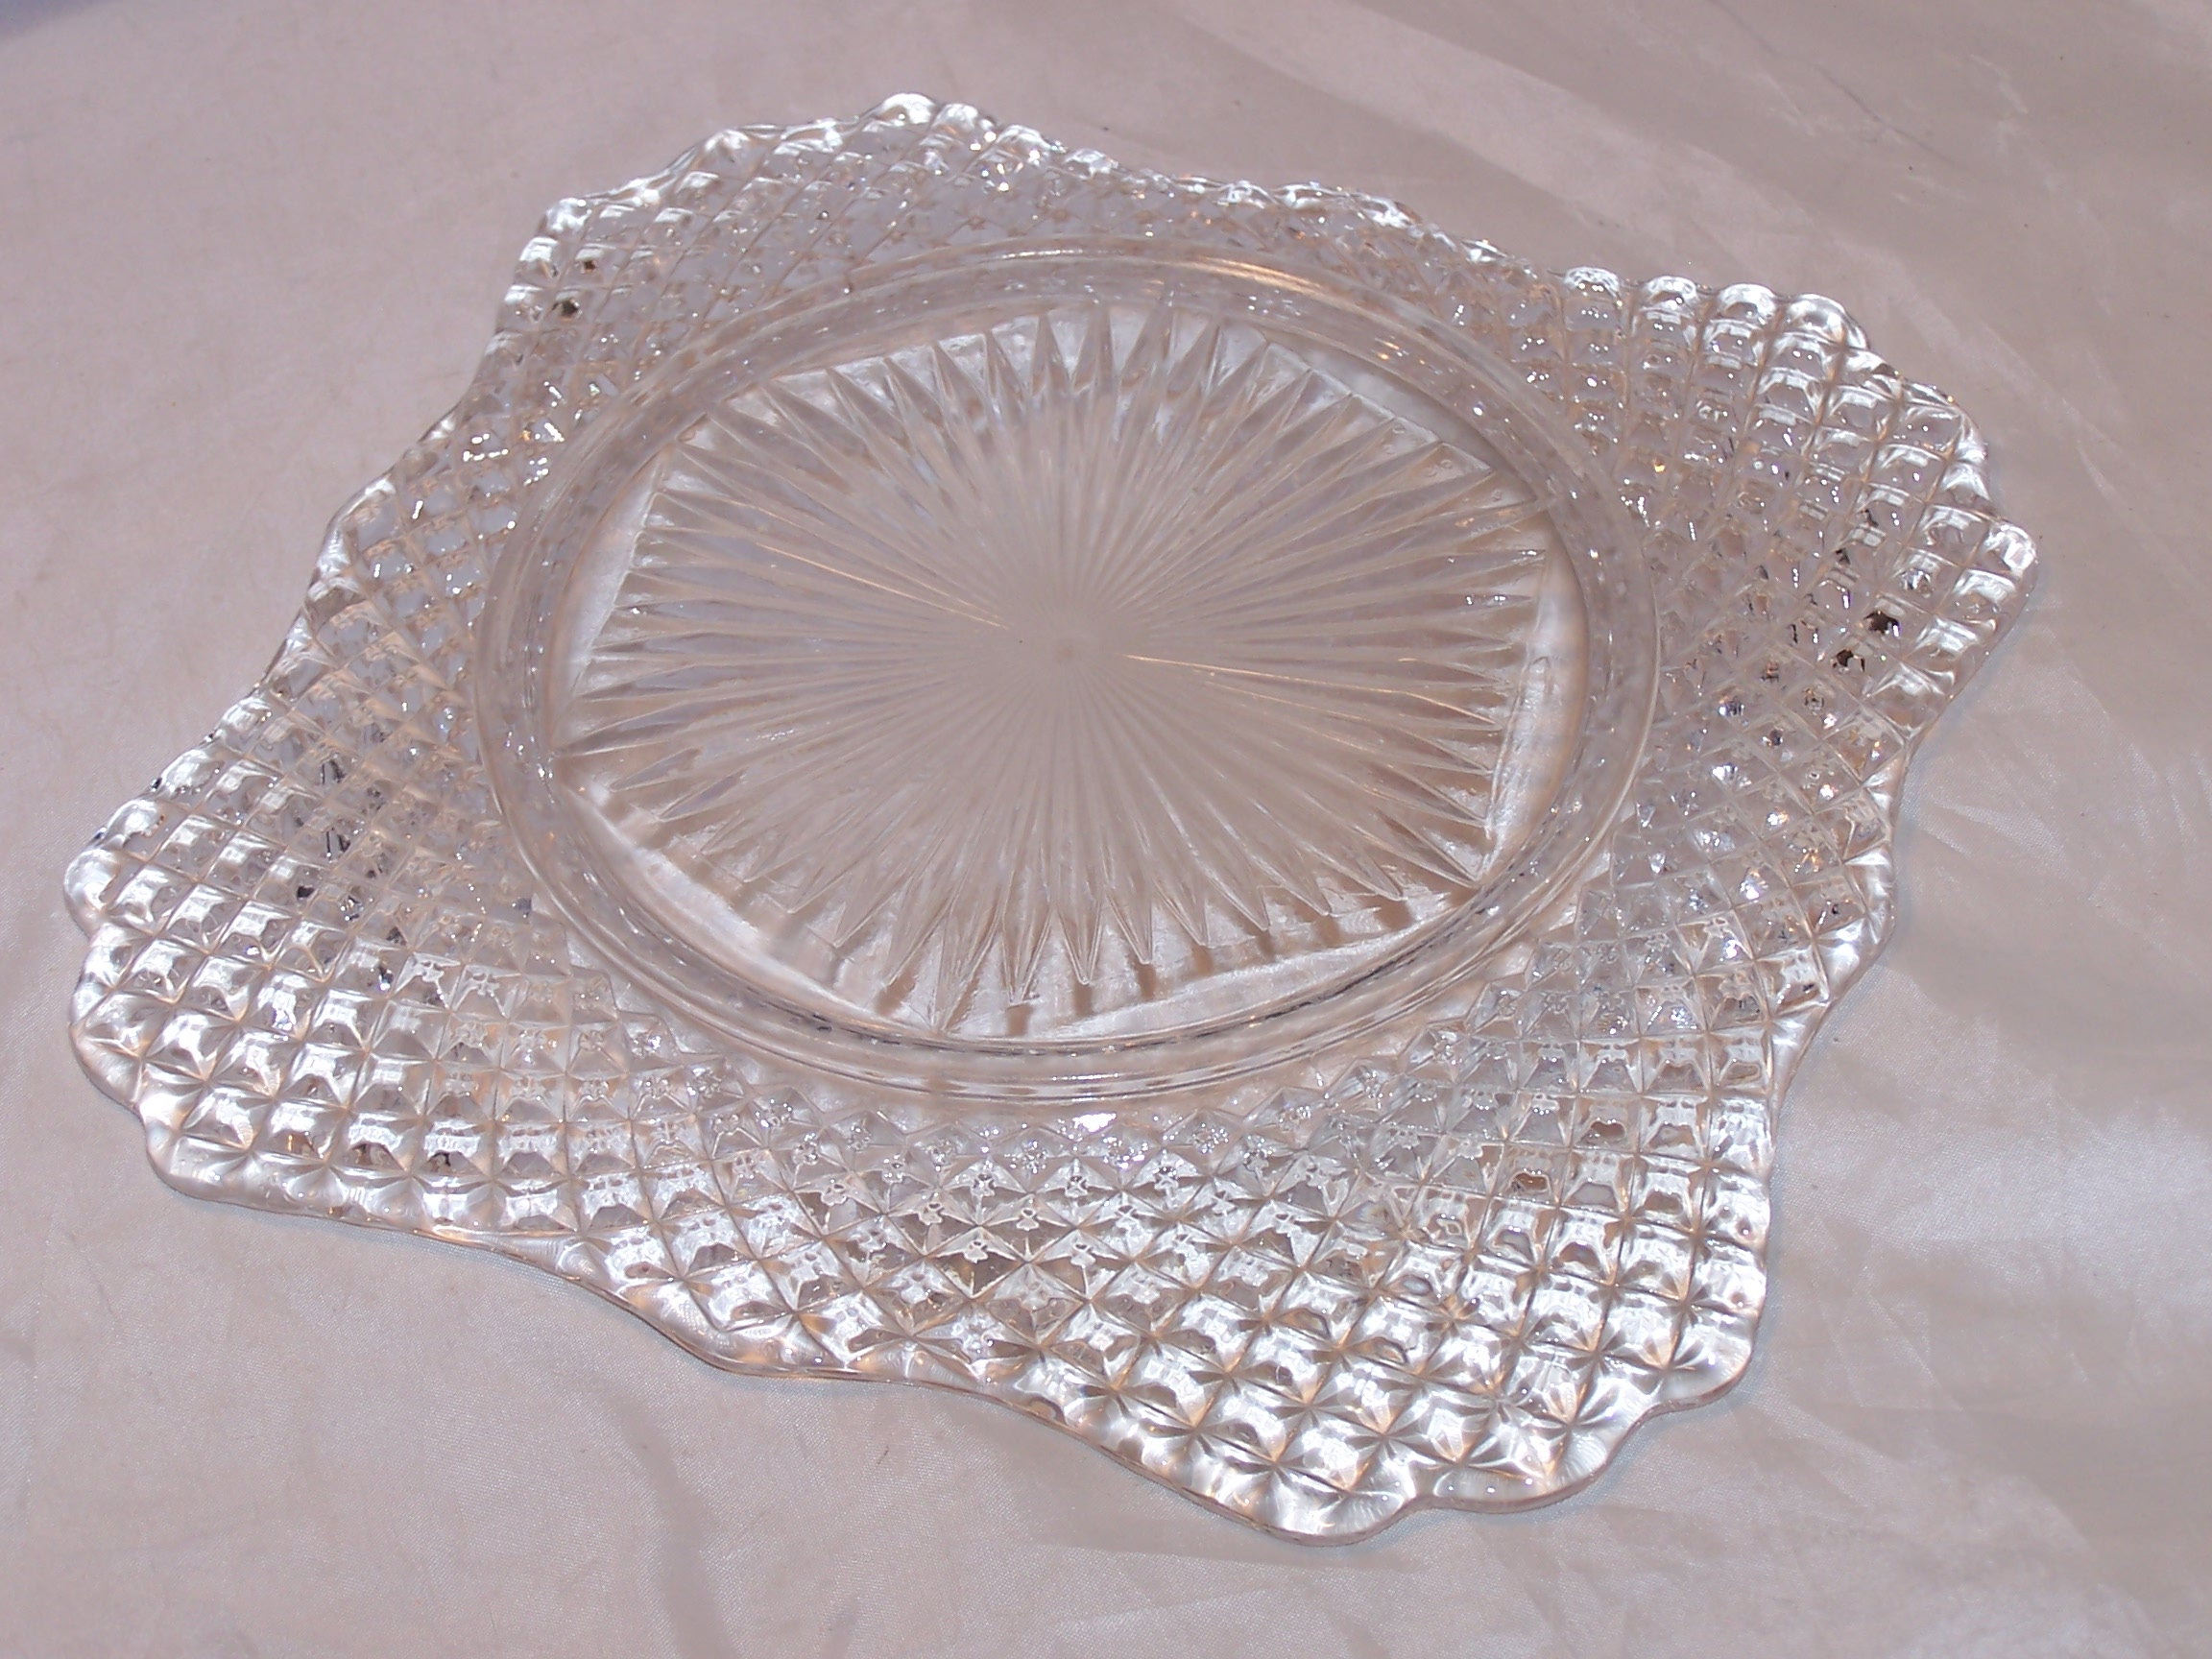 Image 5 of Glass Salad Plate, Square w Scalloping, Vintage